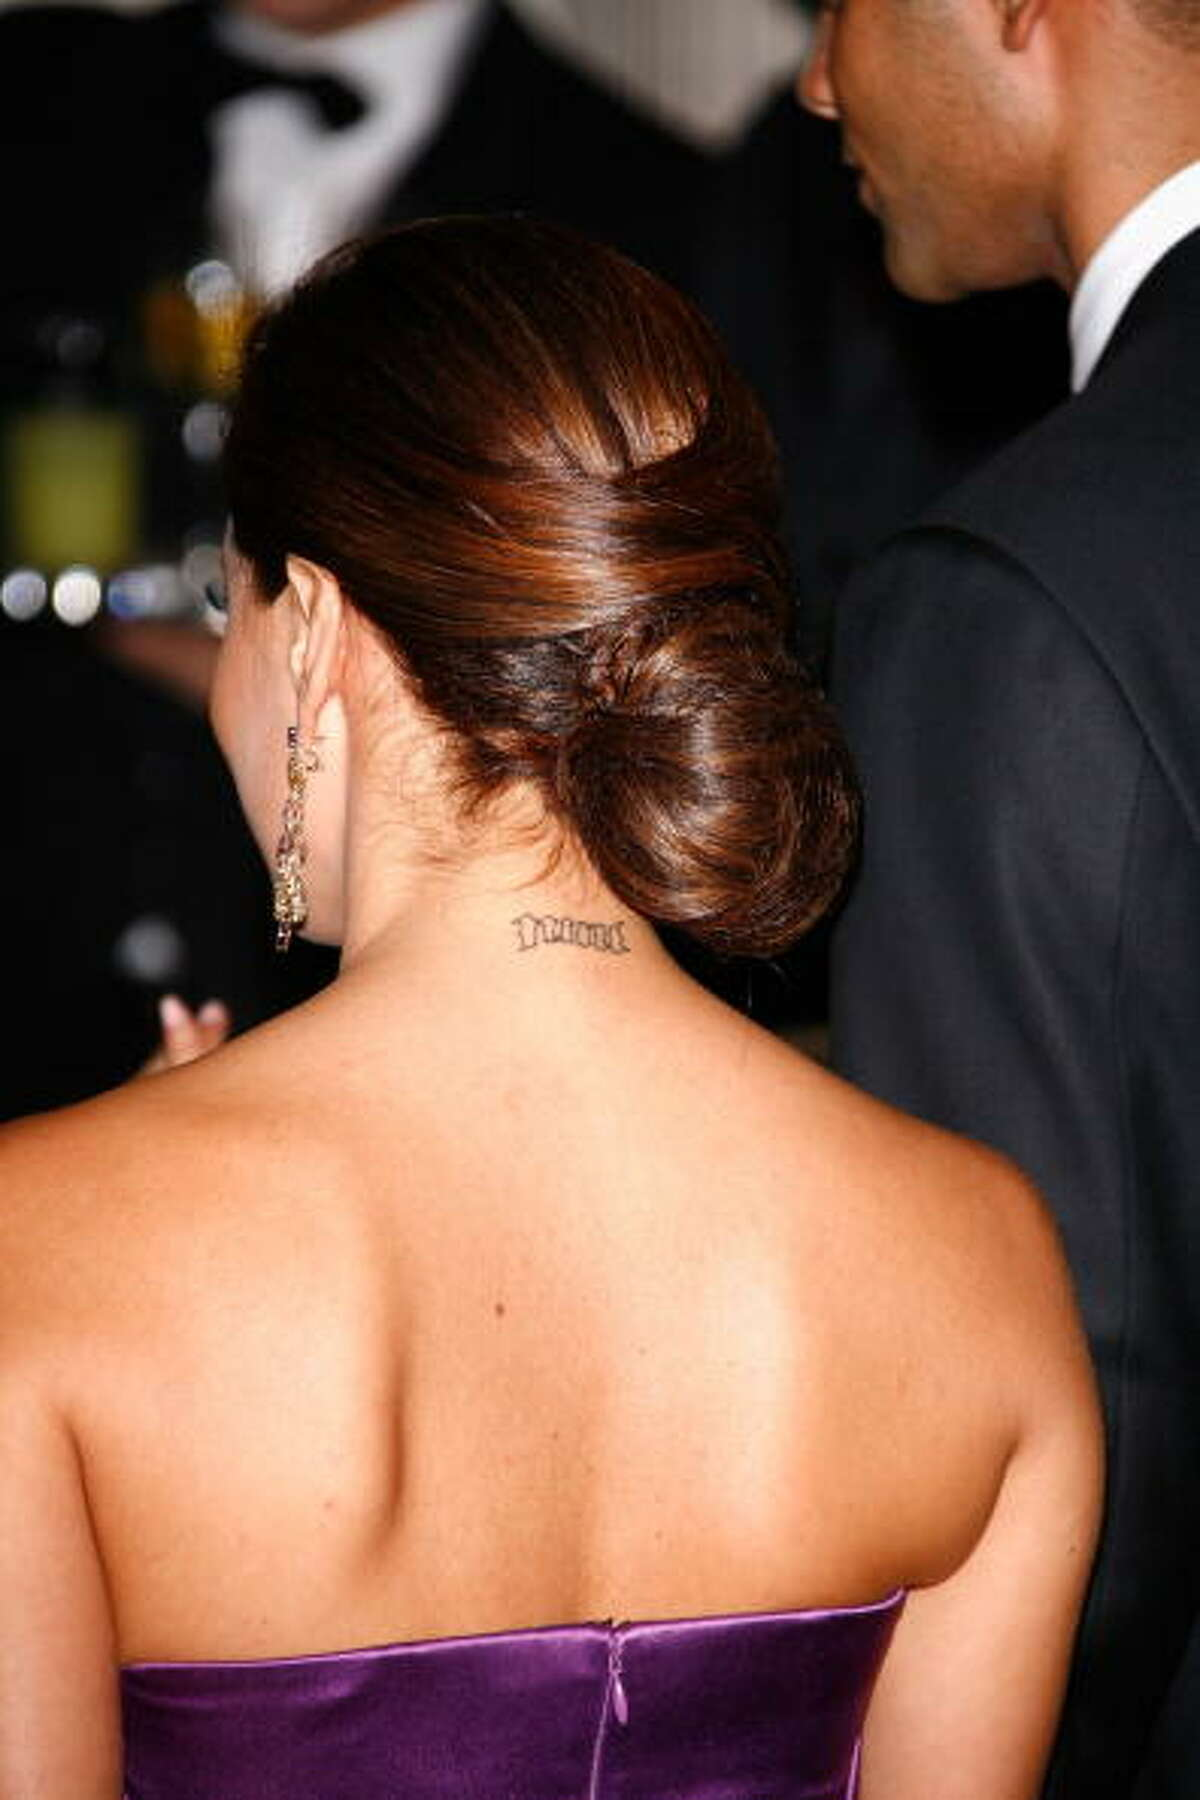 PARIS - SEPTEMBER 21: A tattoo on Eva Longoria's neck is seen as she arrives at the 'Par Coeur Gala' at Hotel Meurice on September 21, 2009 in Paris, France. (Photo by Julien Hekimian/WireImage)